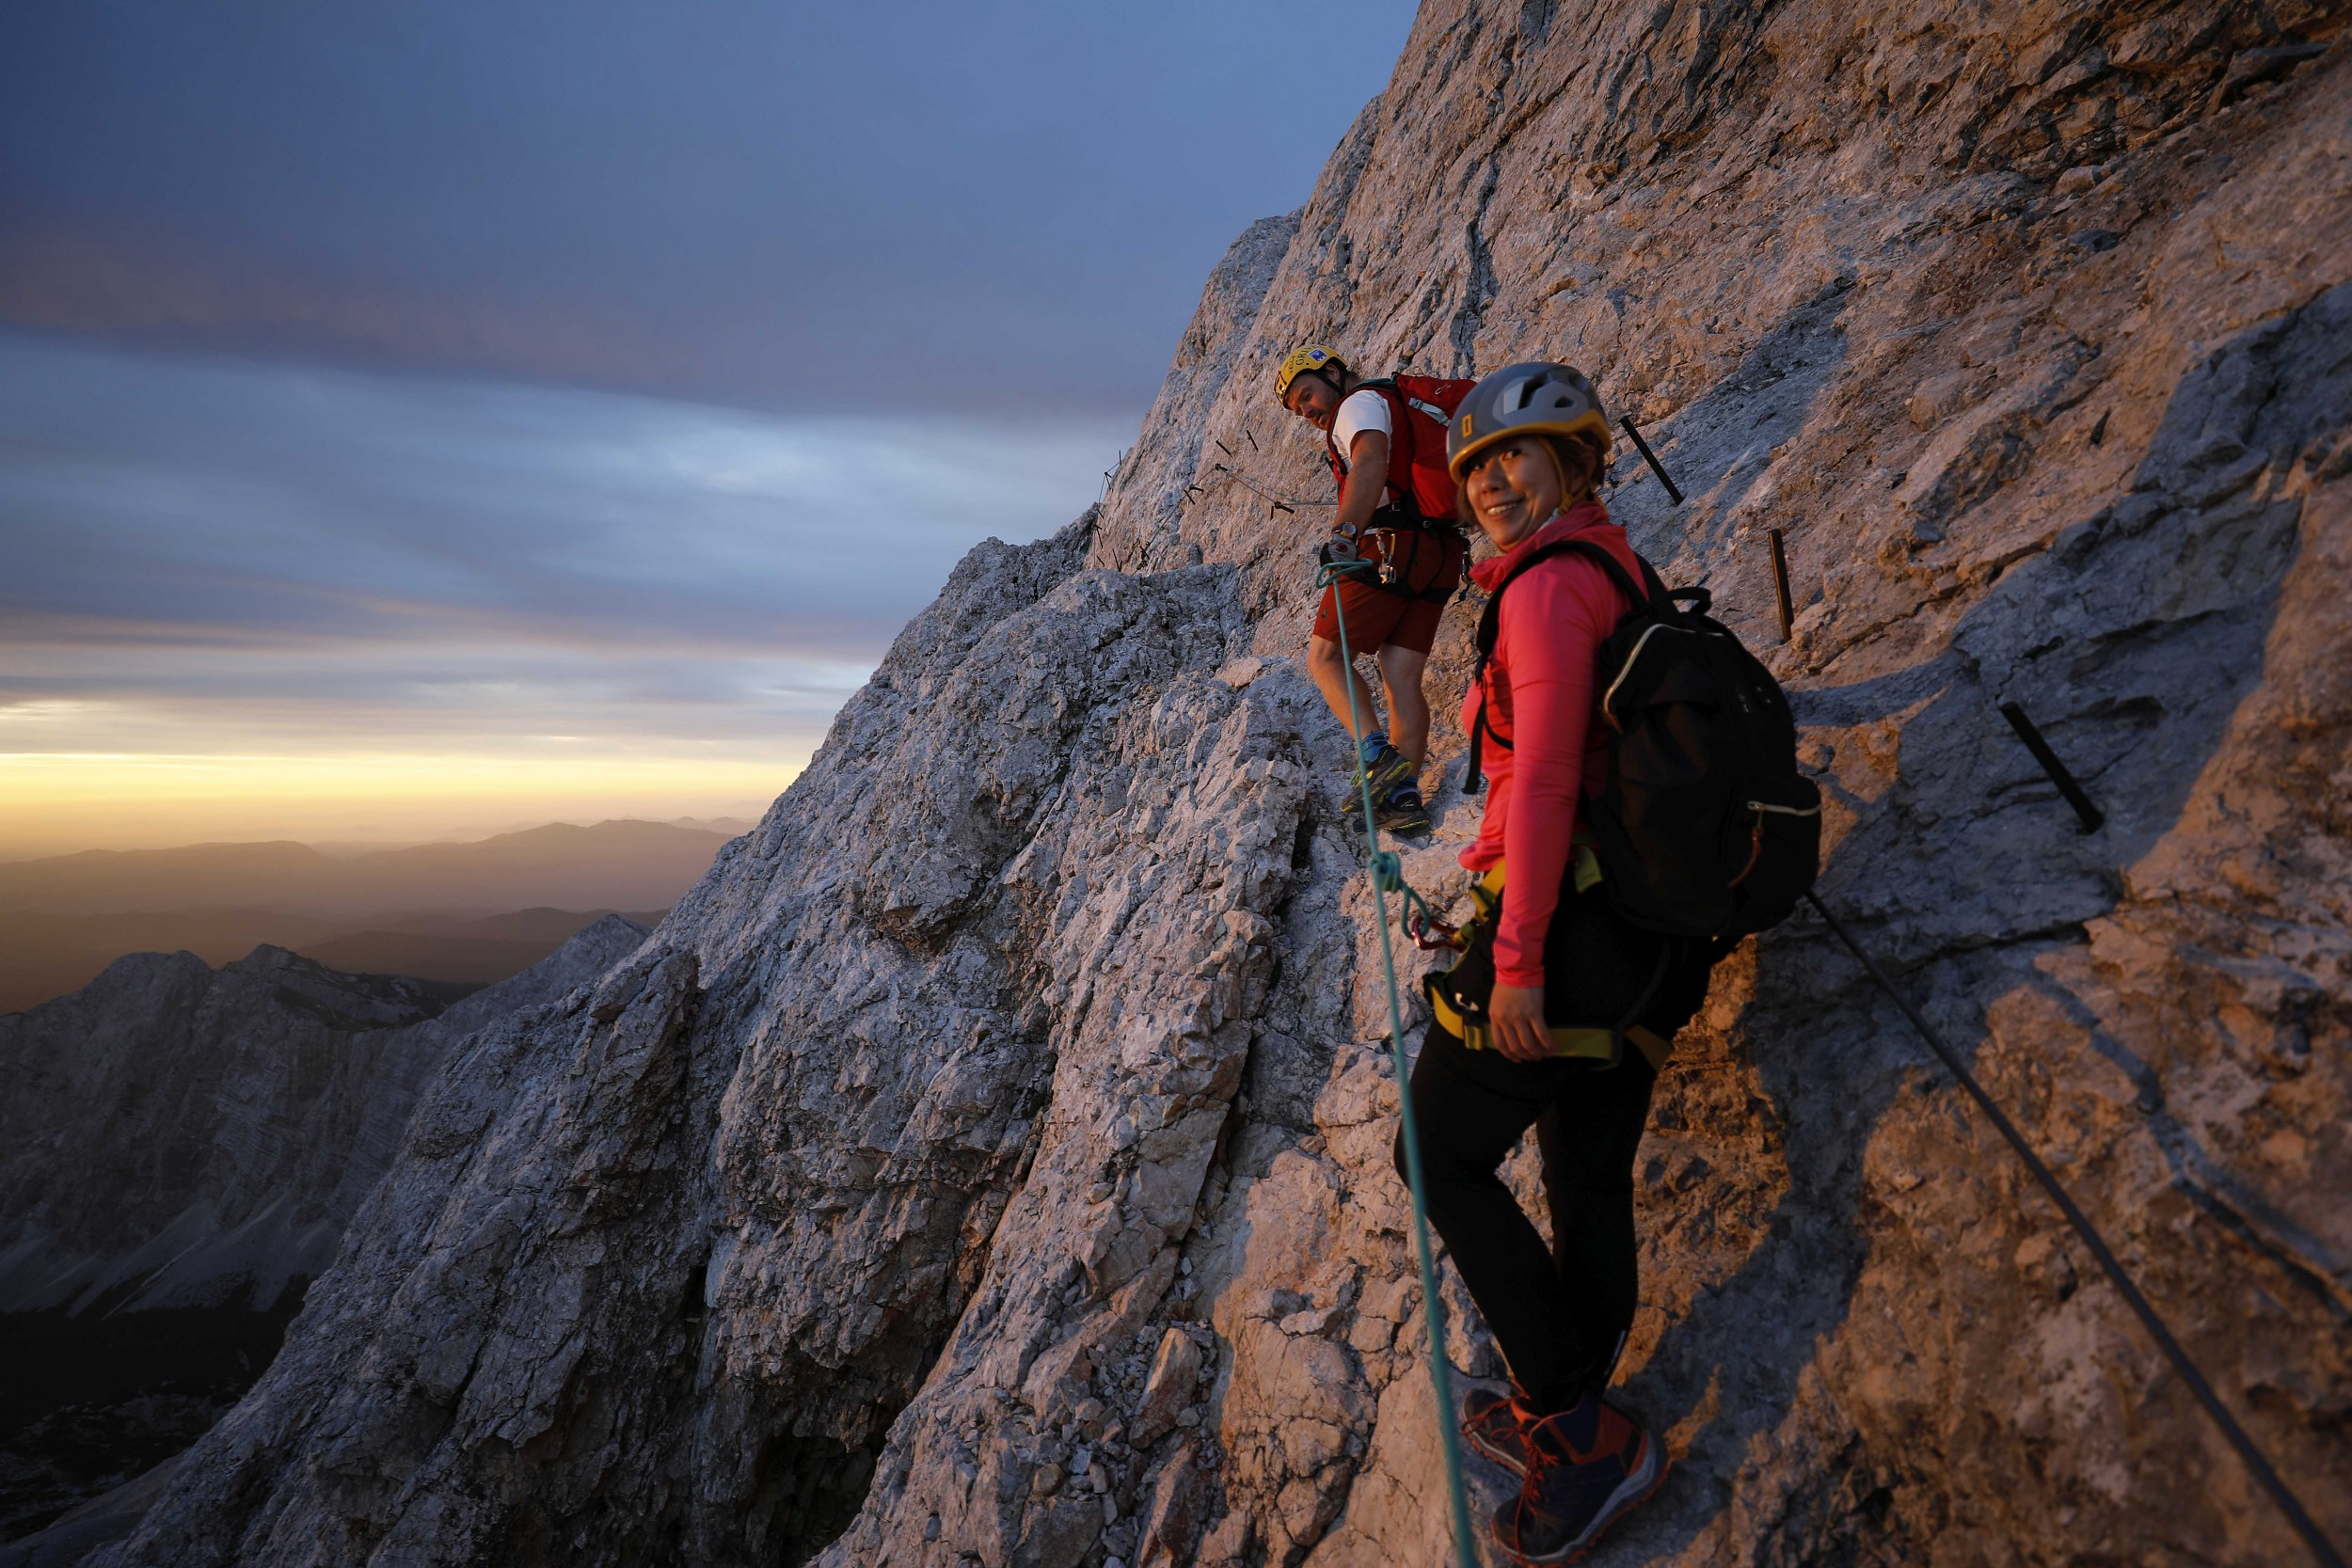 Via Ferrata courses - beginners to experts